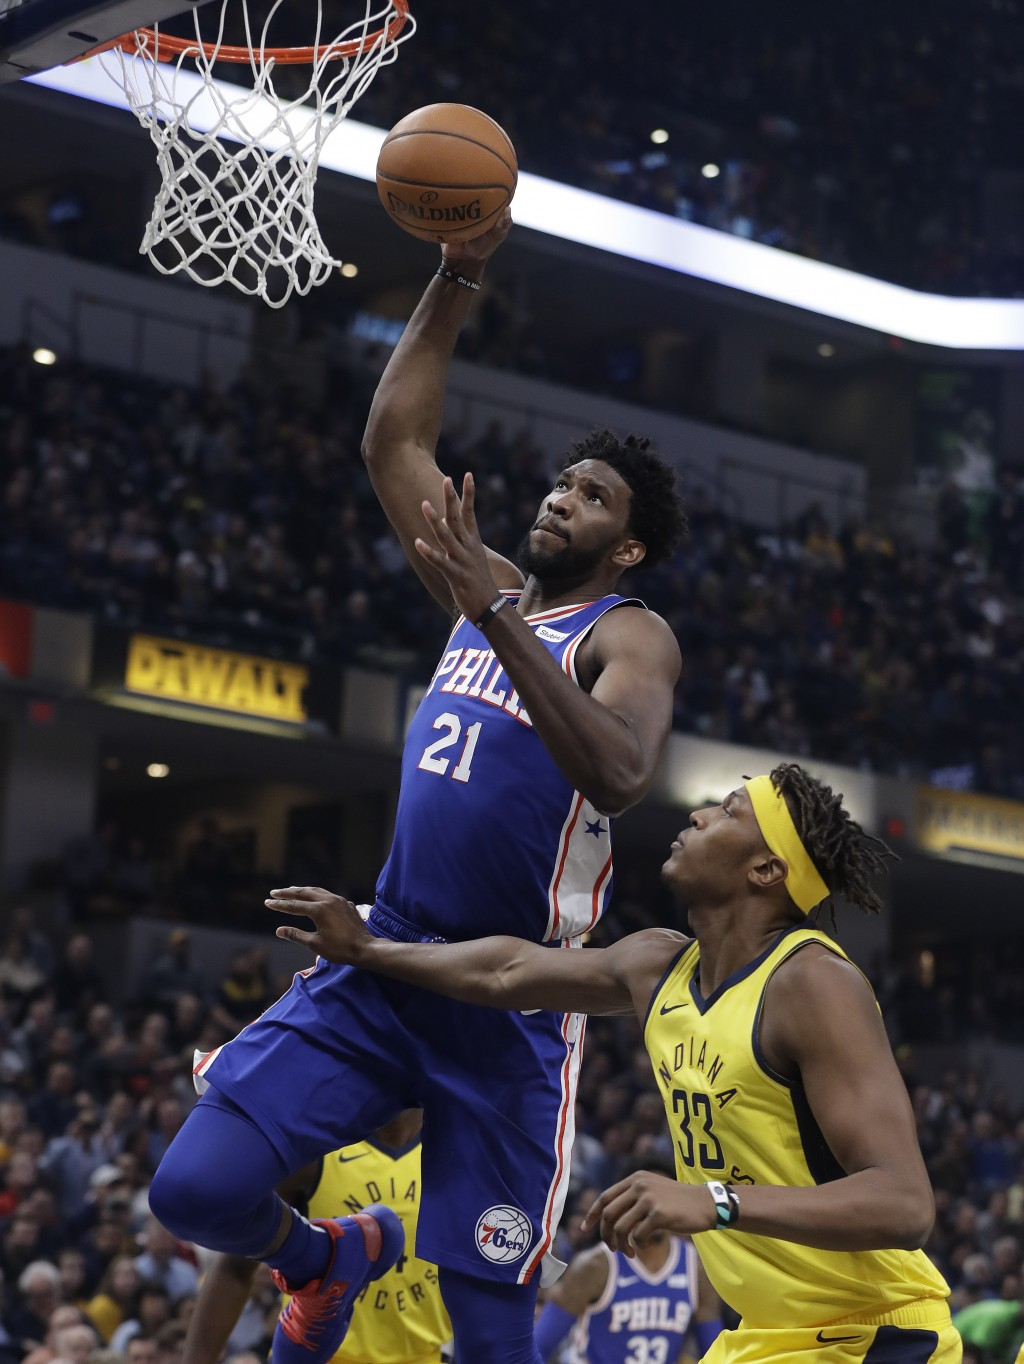 Philadelphia 76ers' Joel Embiid (21) dunks against Indiana Pacers' Myles Turner during the first half of an NBA basketball game, Wednesday, Nov. 7, 20